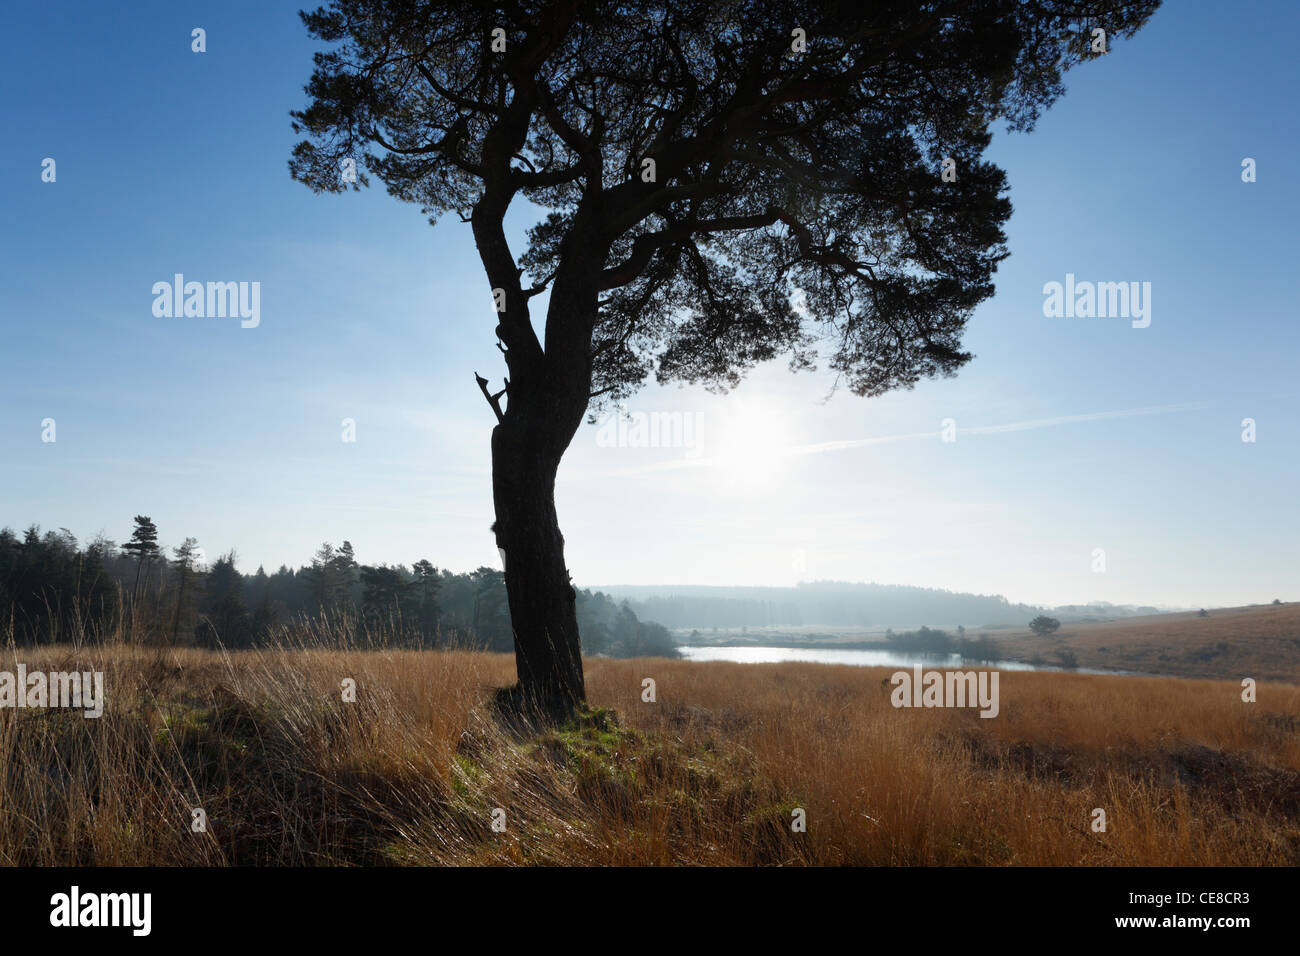 Lone Pine Tree on North Hill in The Mendip Hills. Somerset. England. UK. - Stock Image